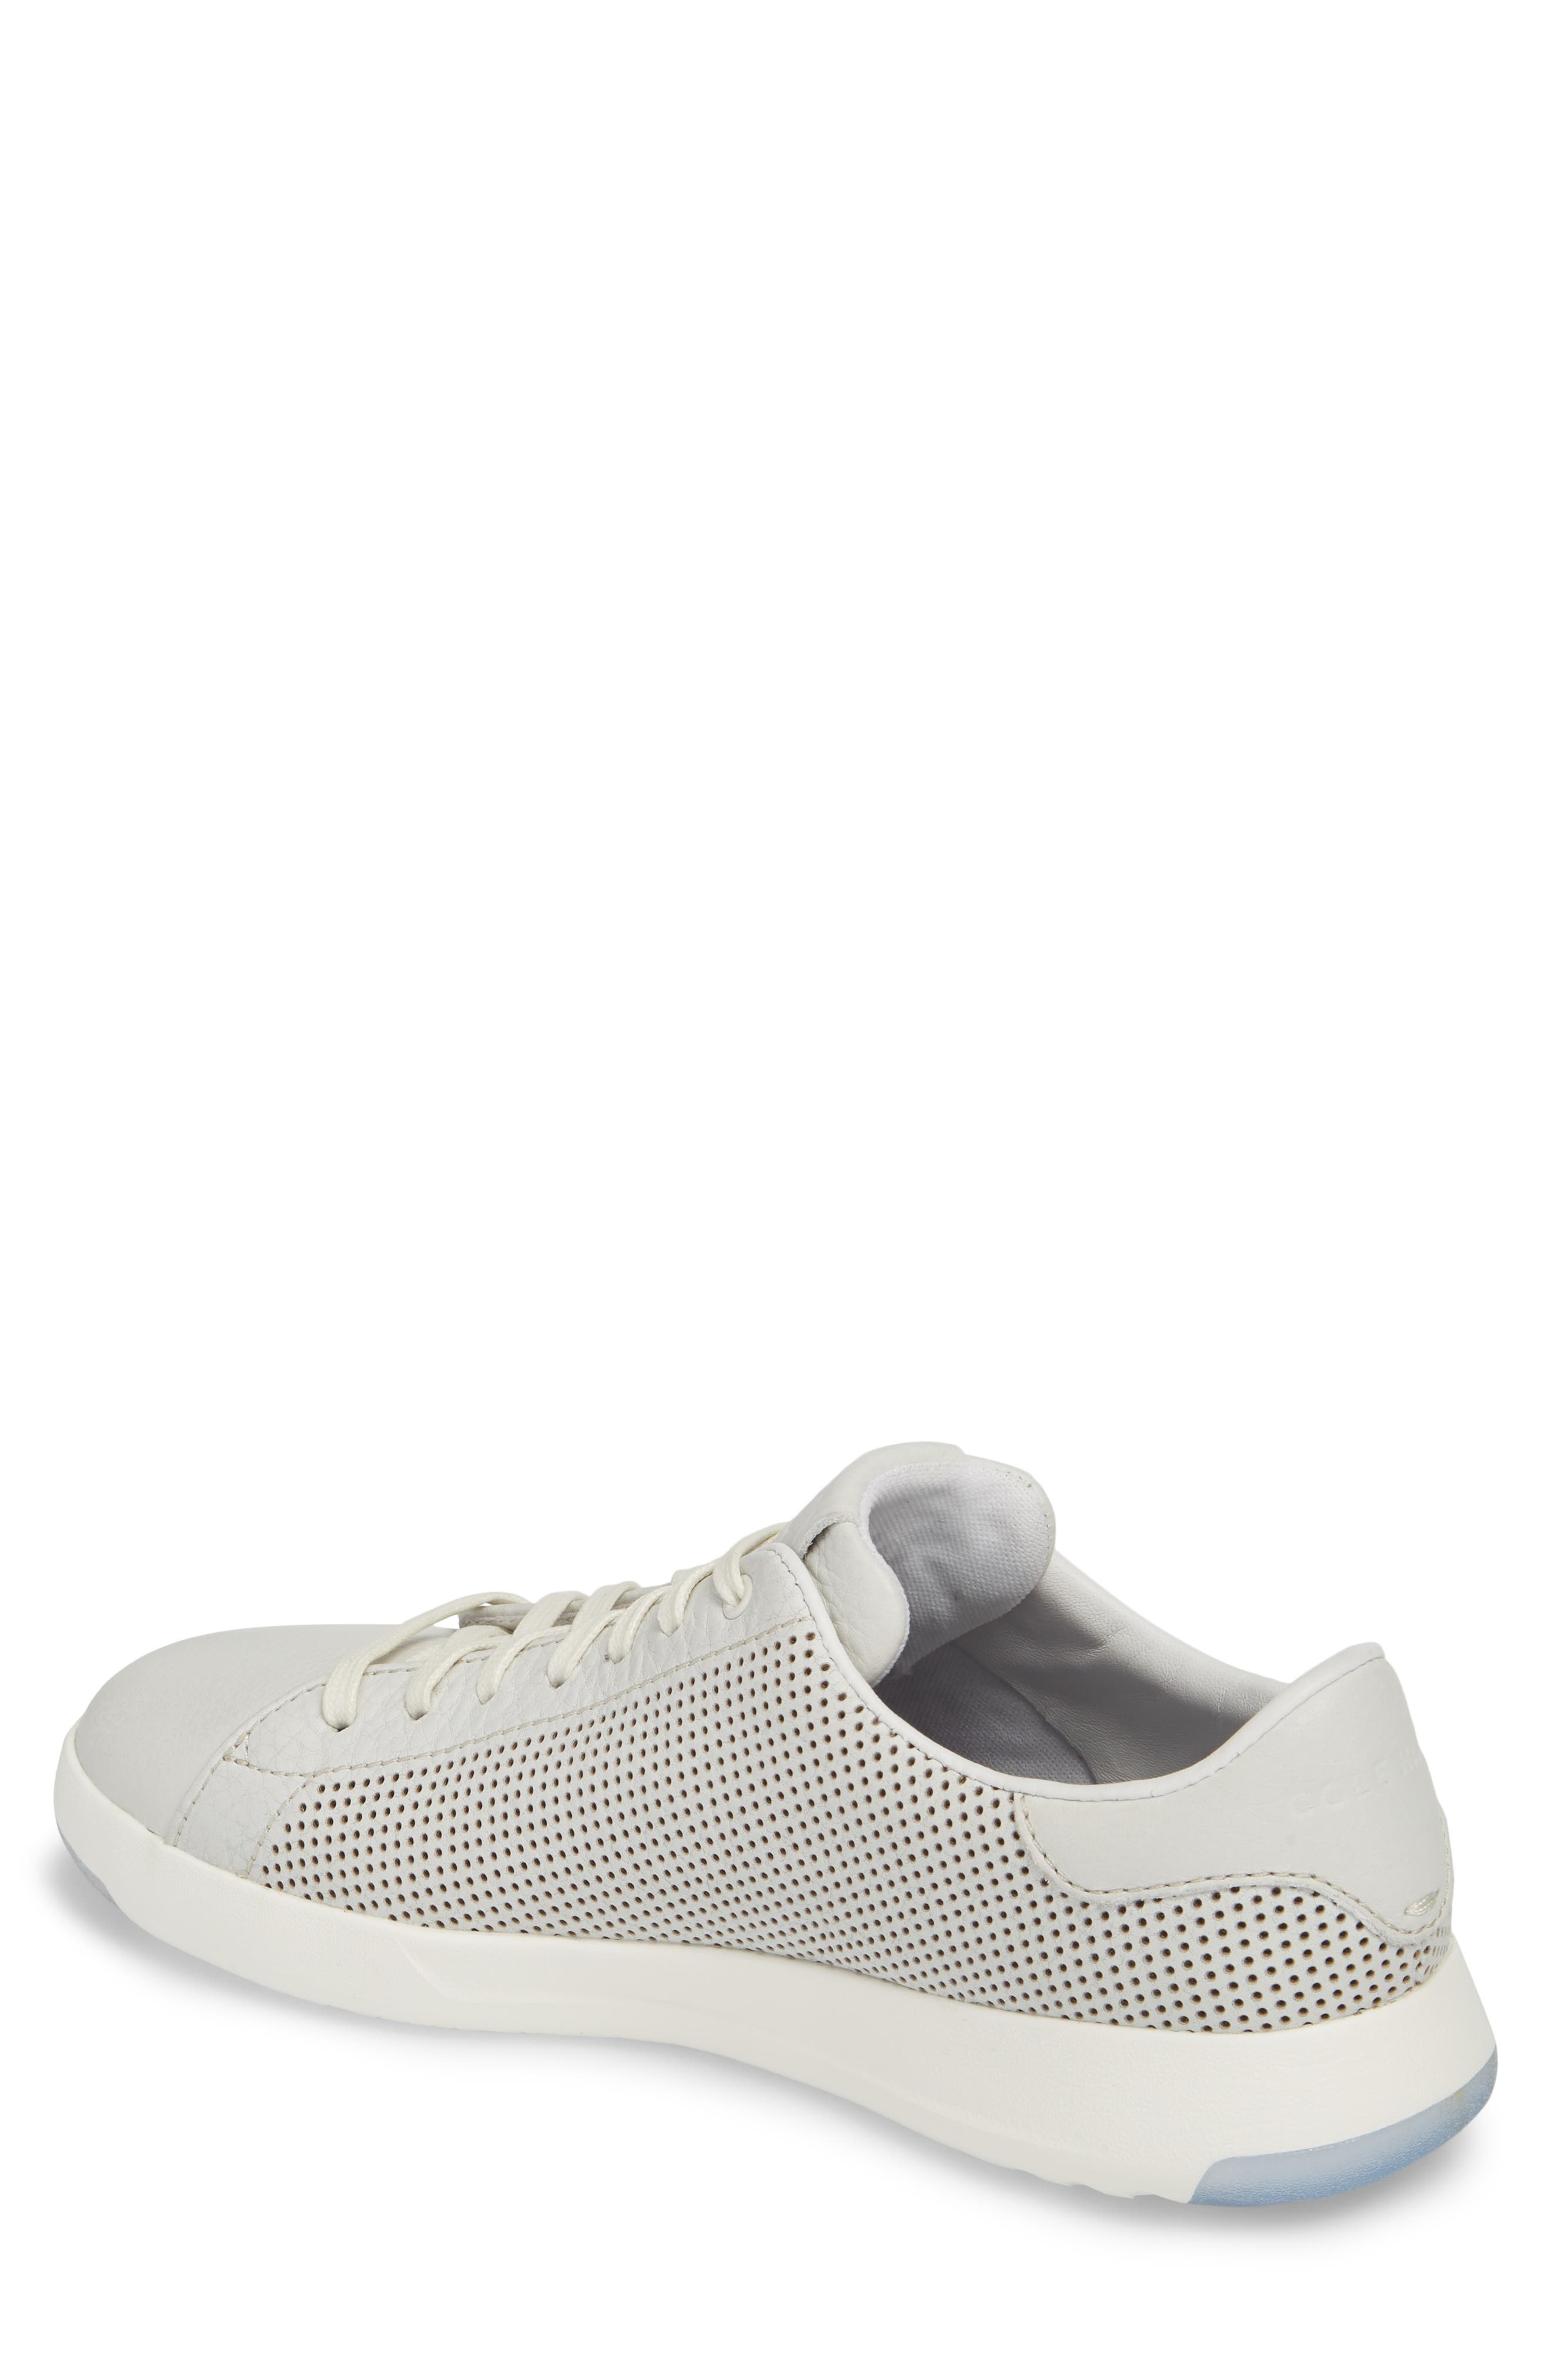 GrandPrø Perforated Low Top Sneaker,                             Alternate thumbnail 2, color,                             WHITE TUM LEATHER